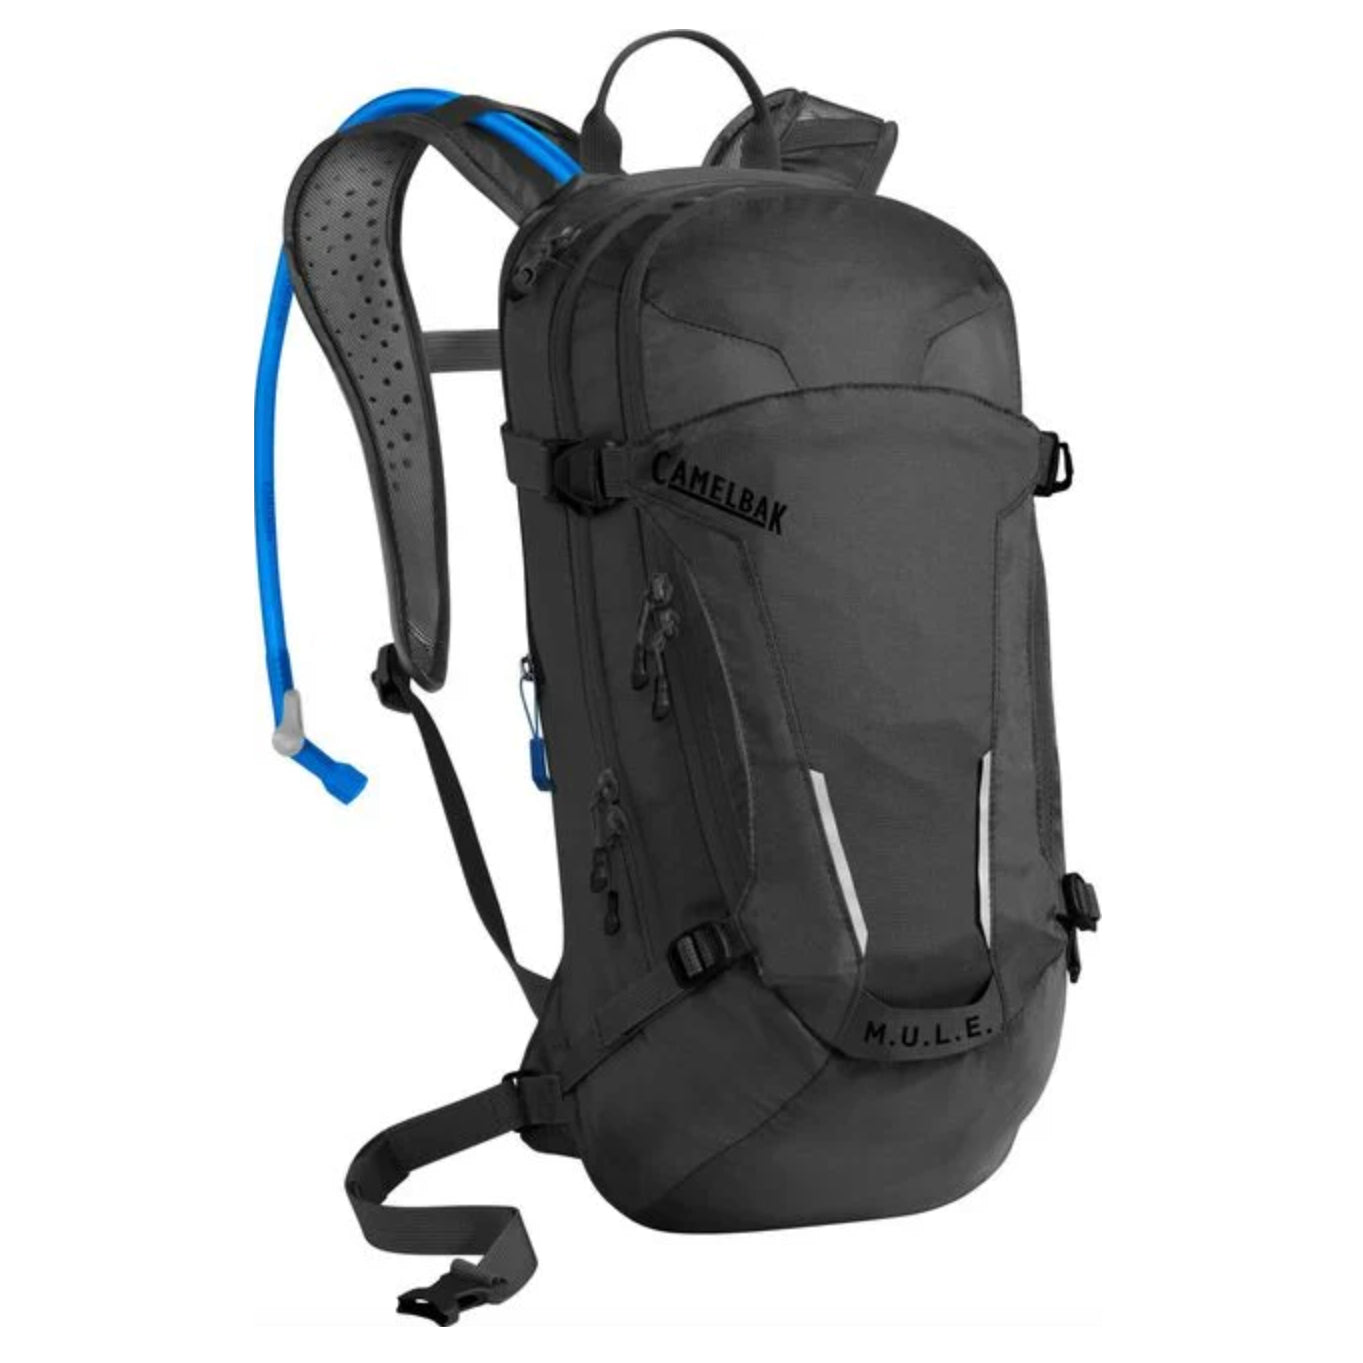 MULE 100oz hydration pack front view black